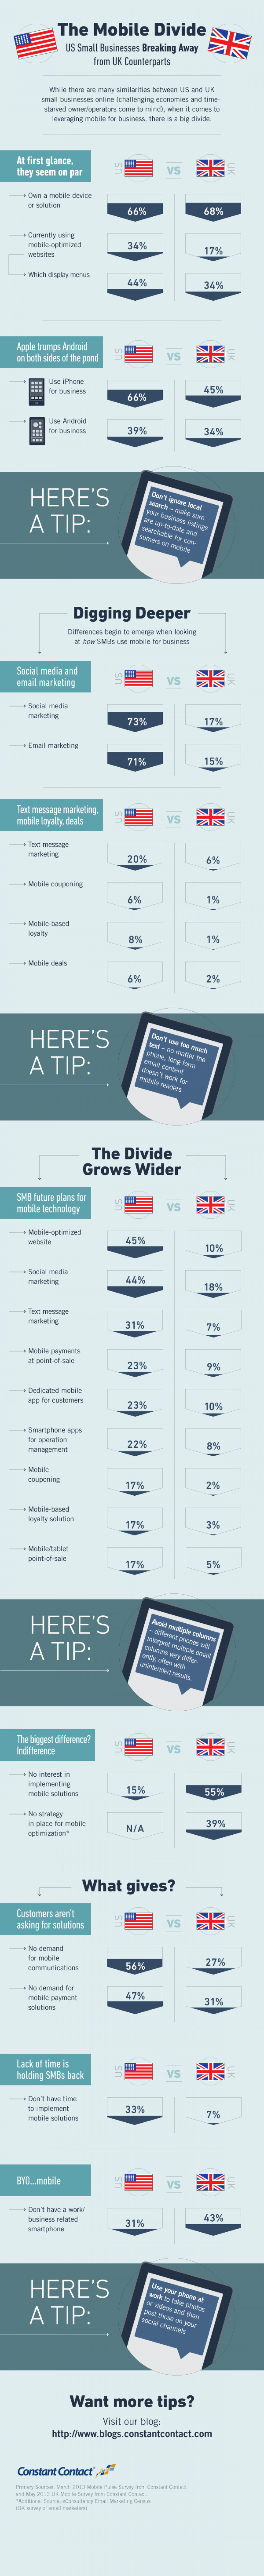 The Mobile Divide Infographic